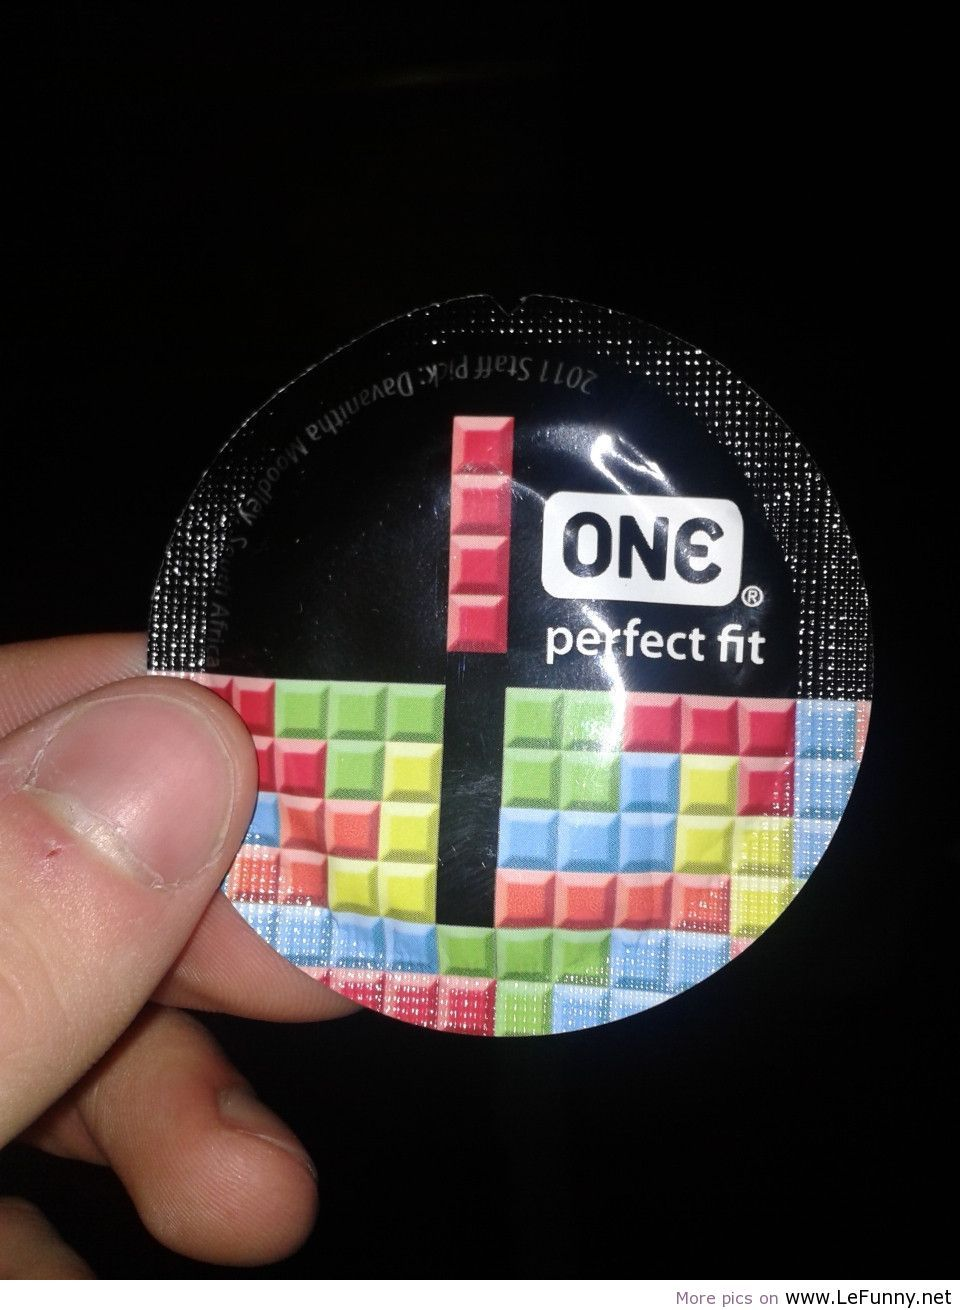 One perfect fit – Funny condom add